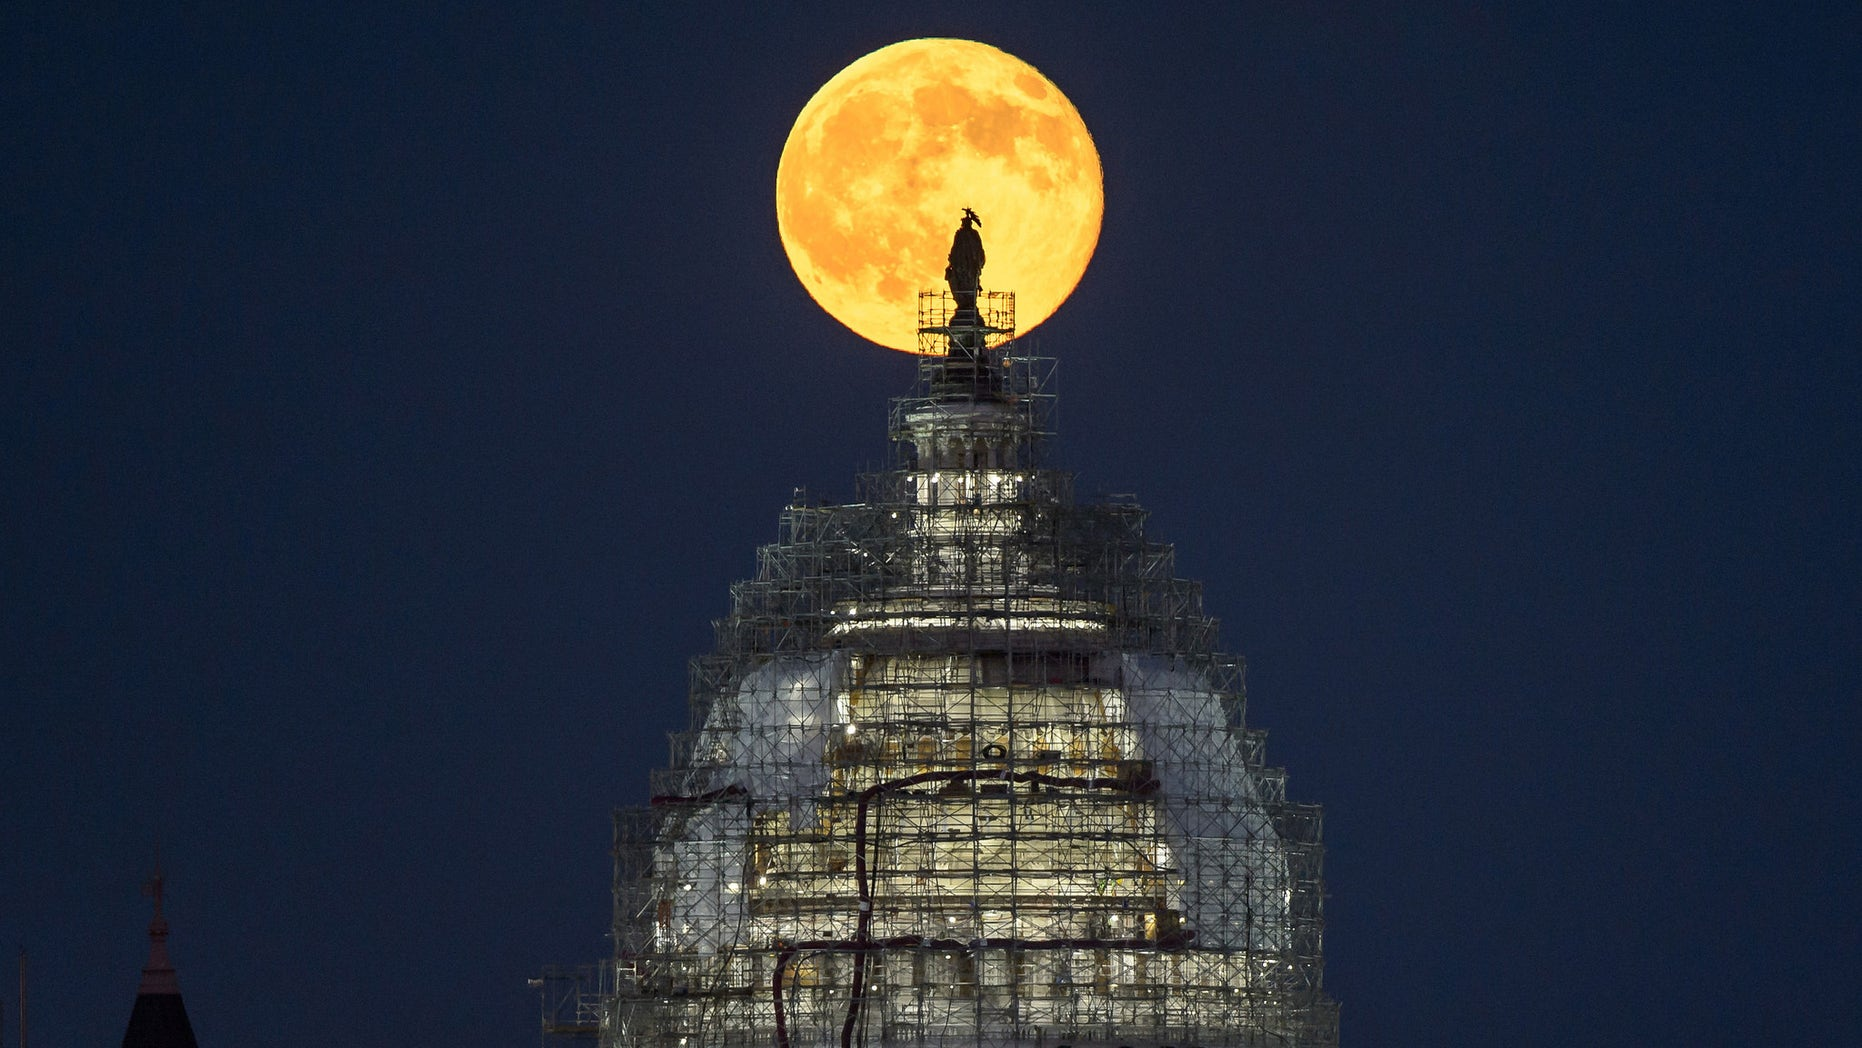 "The ""blue moon"" full moon of July 31, 2015 rises behind the dome the U.S. Capitol in this image from NASA photographer Bill Ingalls."